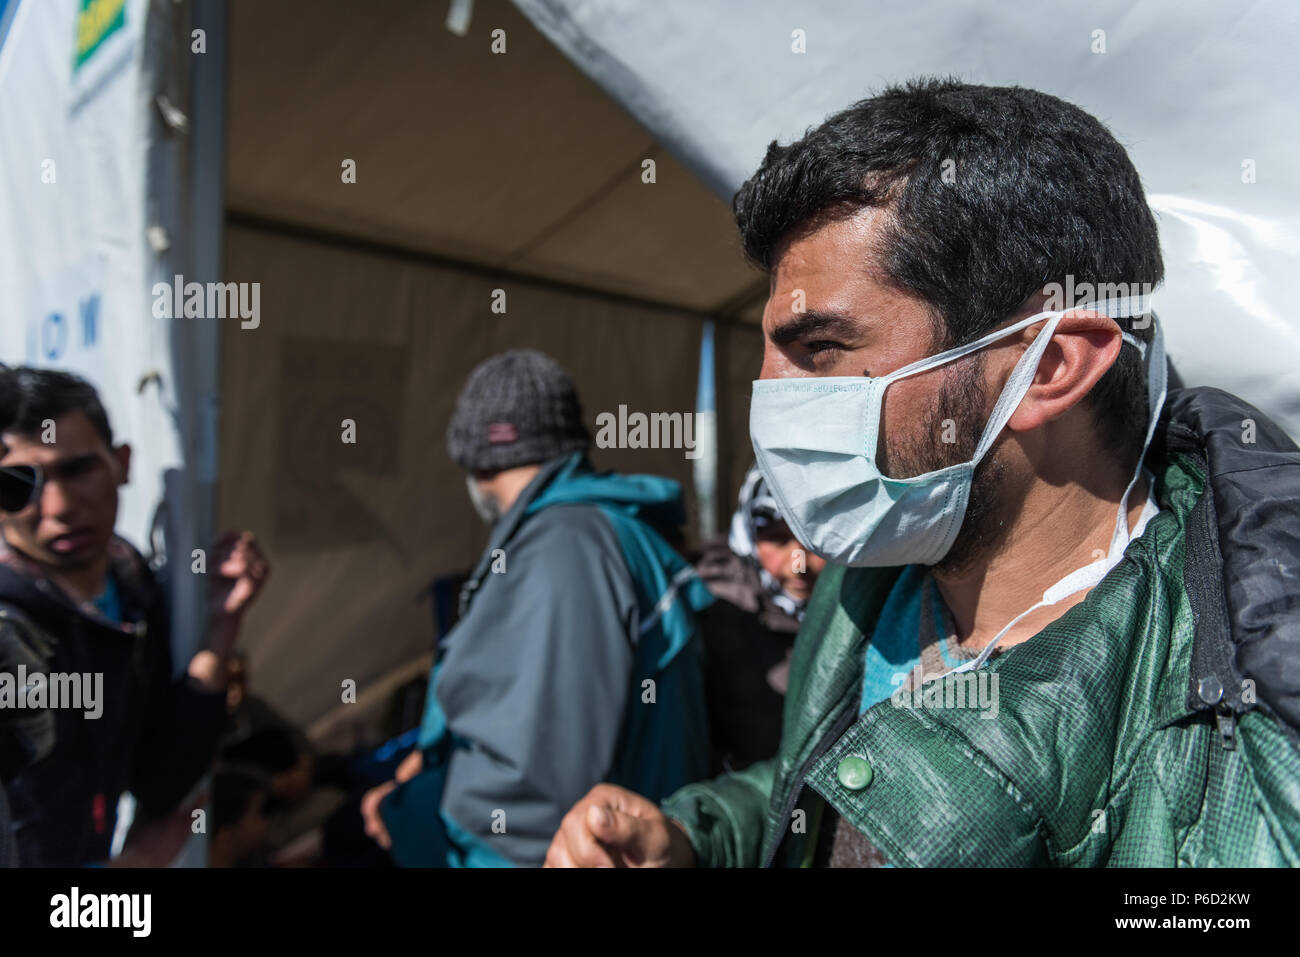 Unhygienic conditions in the refugee camp that prevail in the camp, some people wear masks at the makeshift refugee camp of the Greek-Macedonian borde Stock Photo